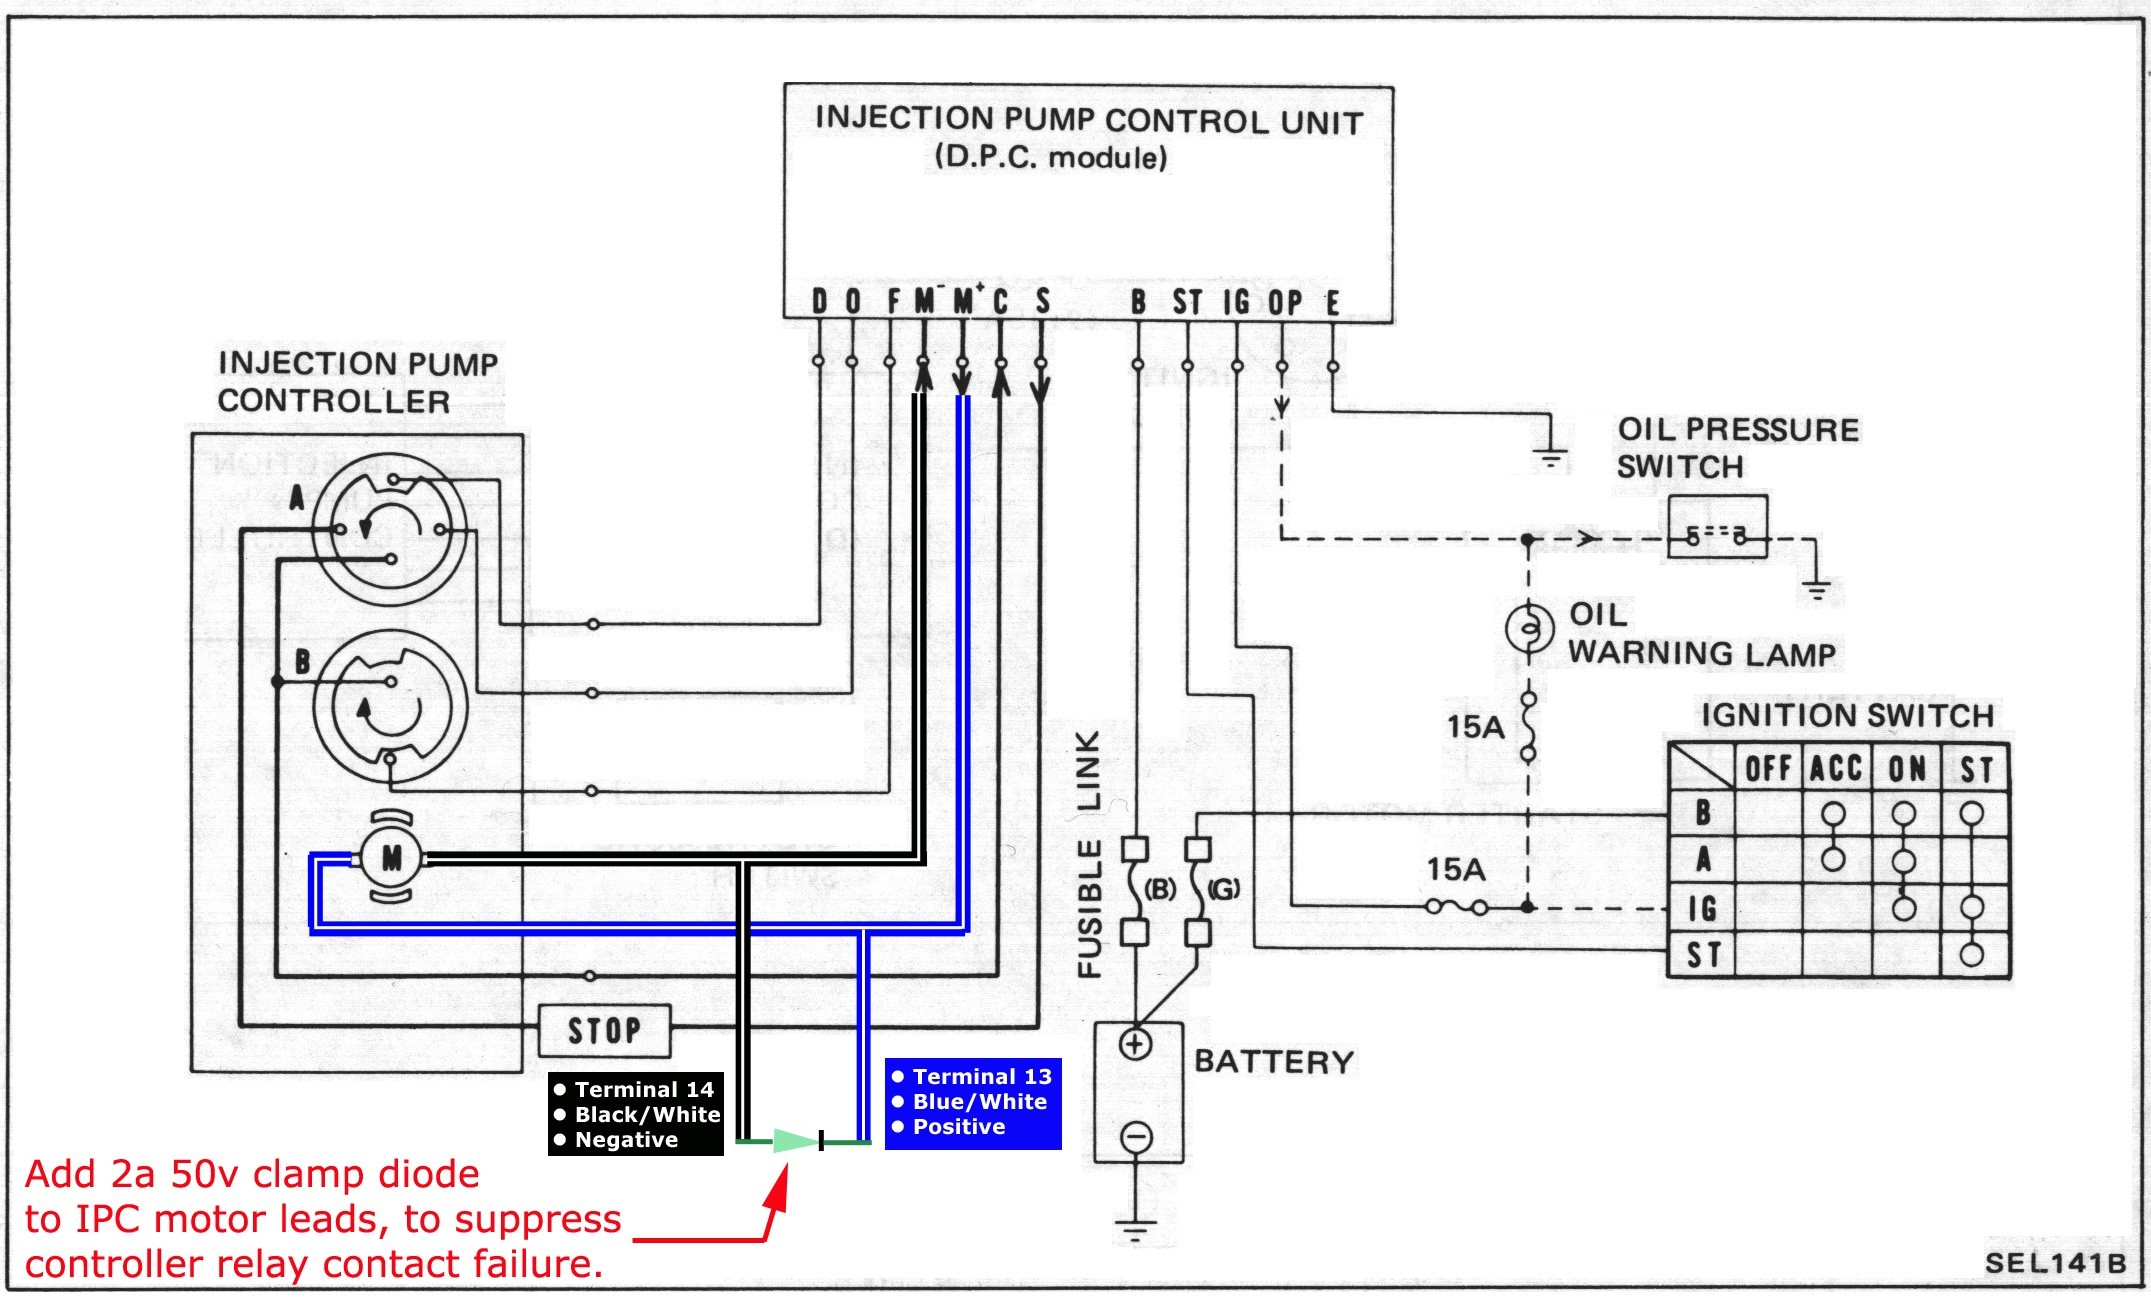 1996 nissan maxima stereo wiring diagram hunter pro c sprinkler system altima engine my